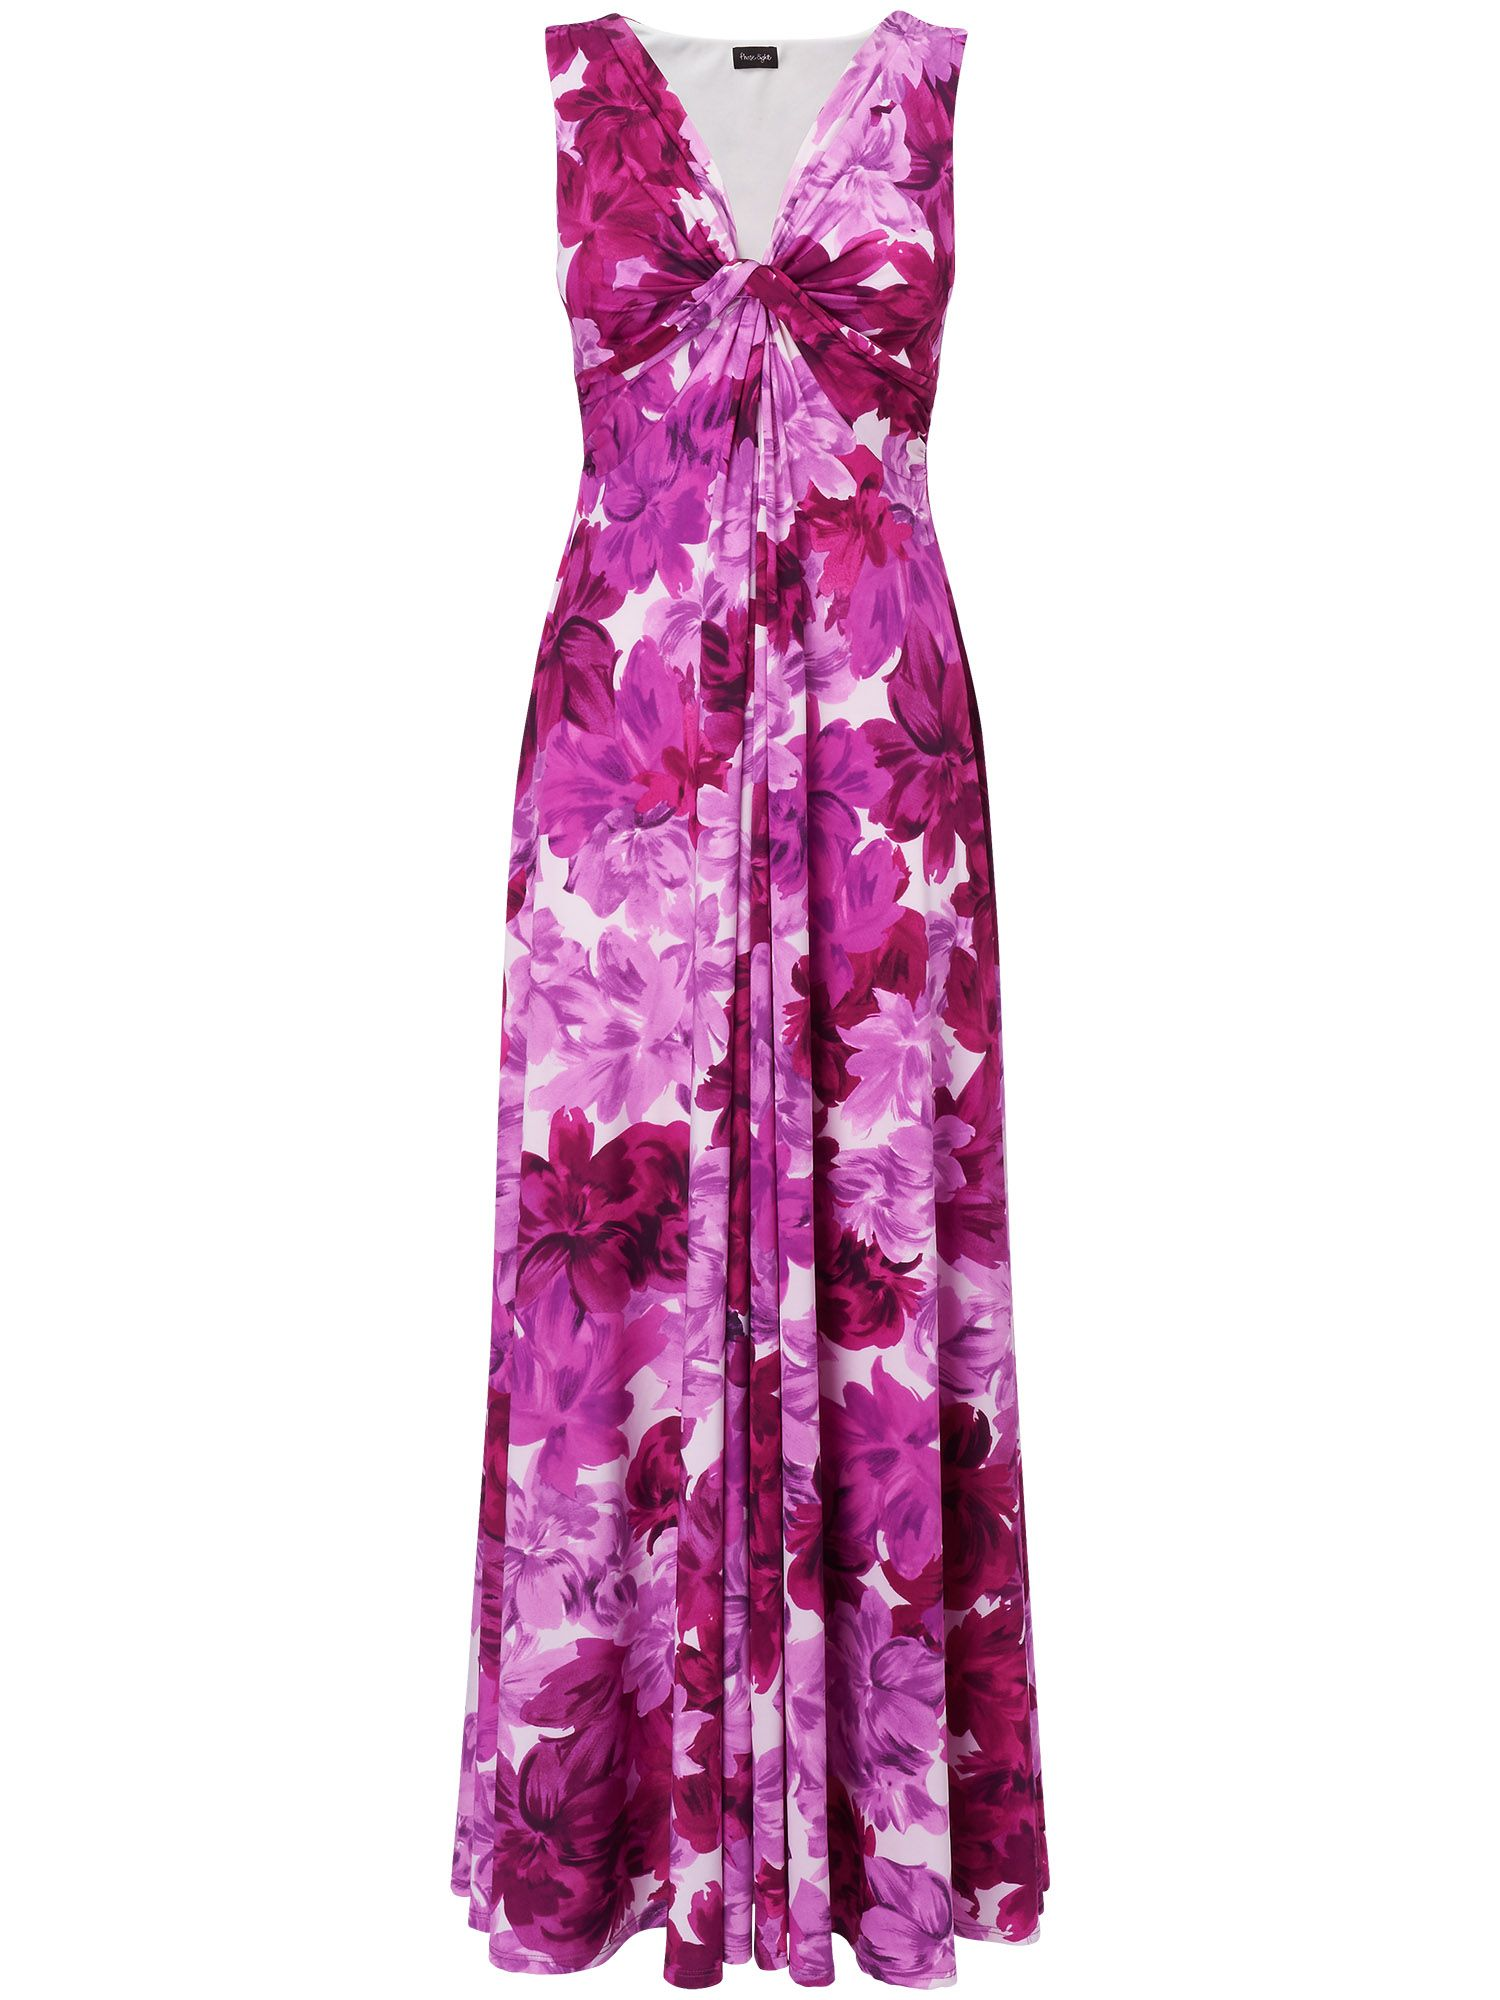 Tea rose maxi dress